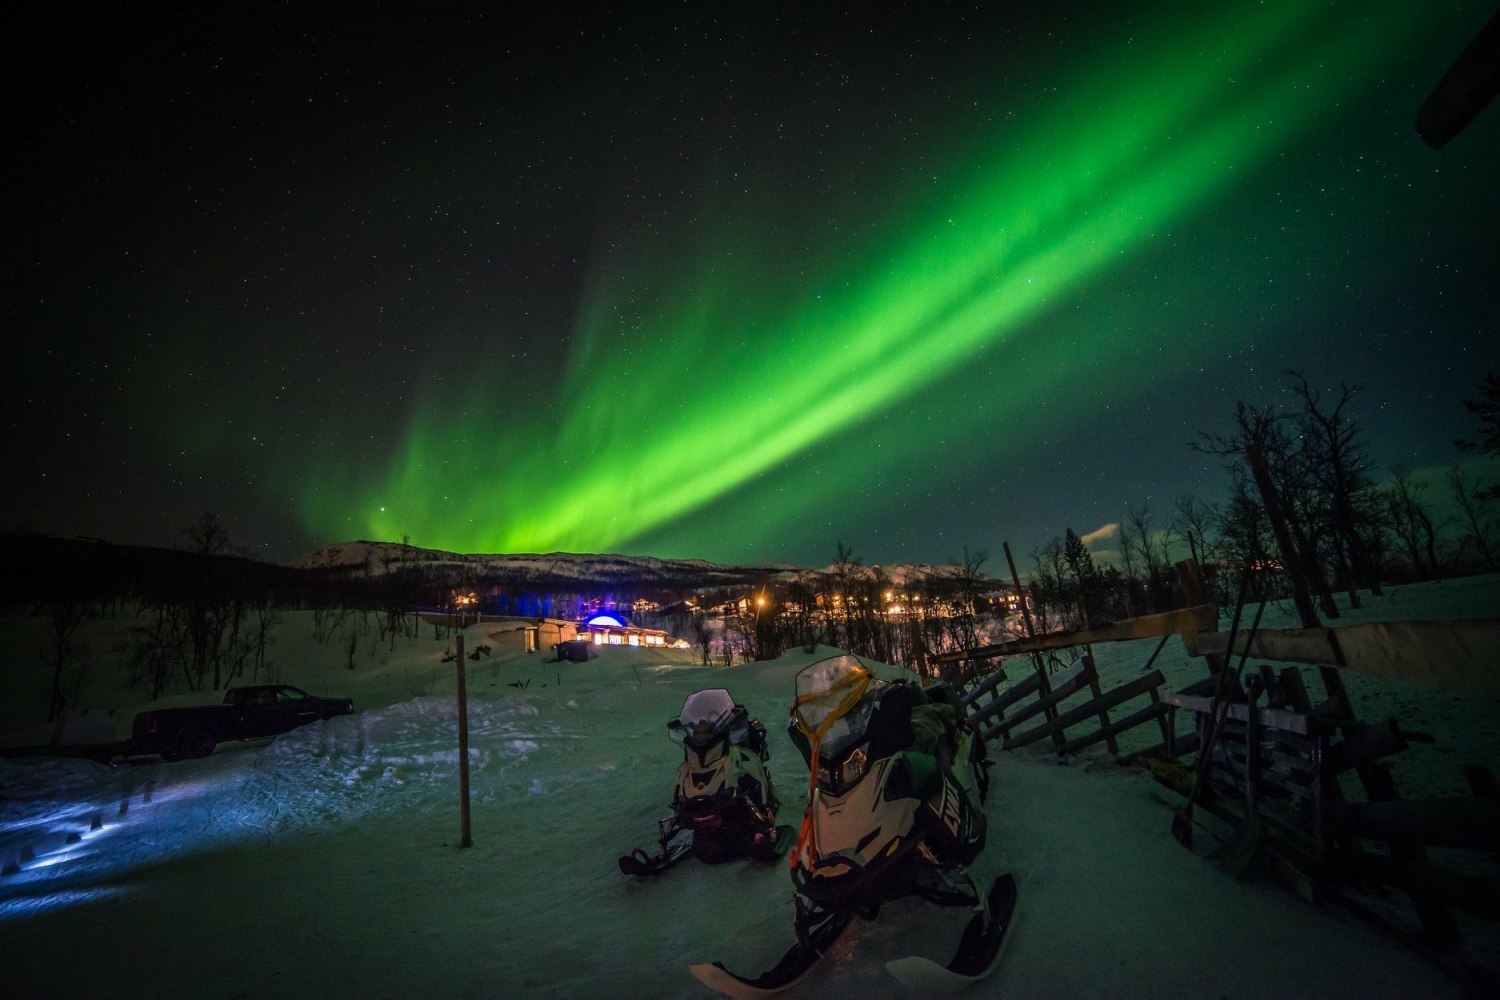 Northern lights above Arctic winter landscape, and snowmobiles